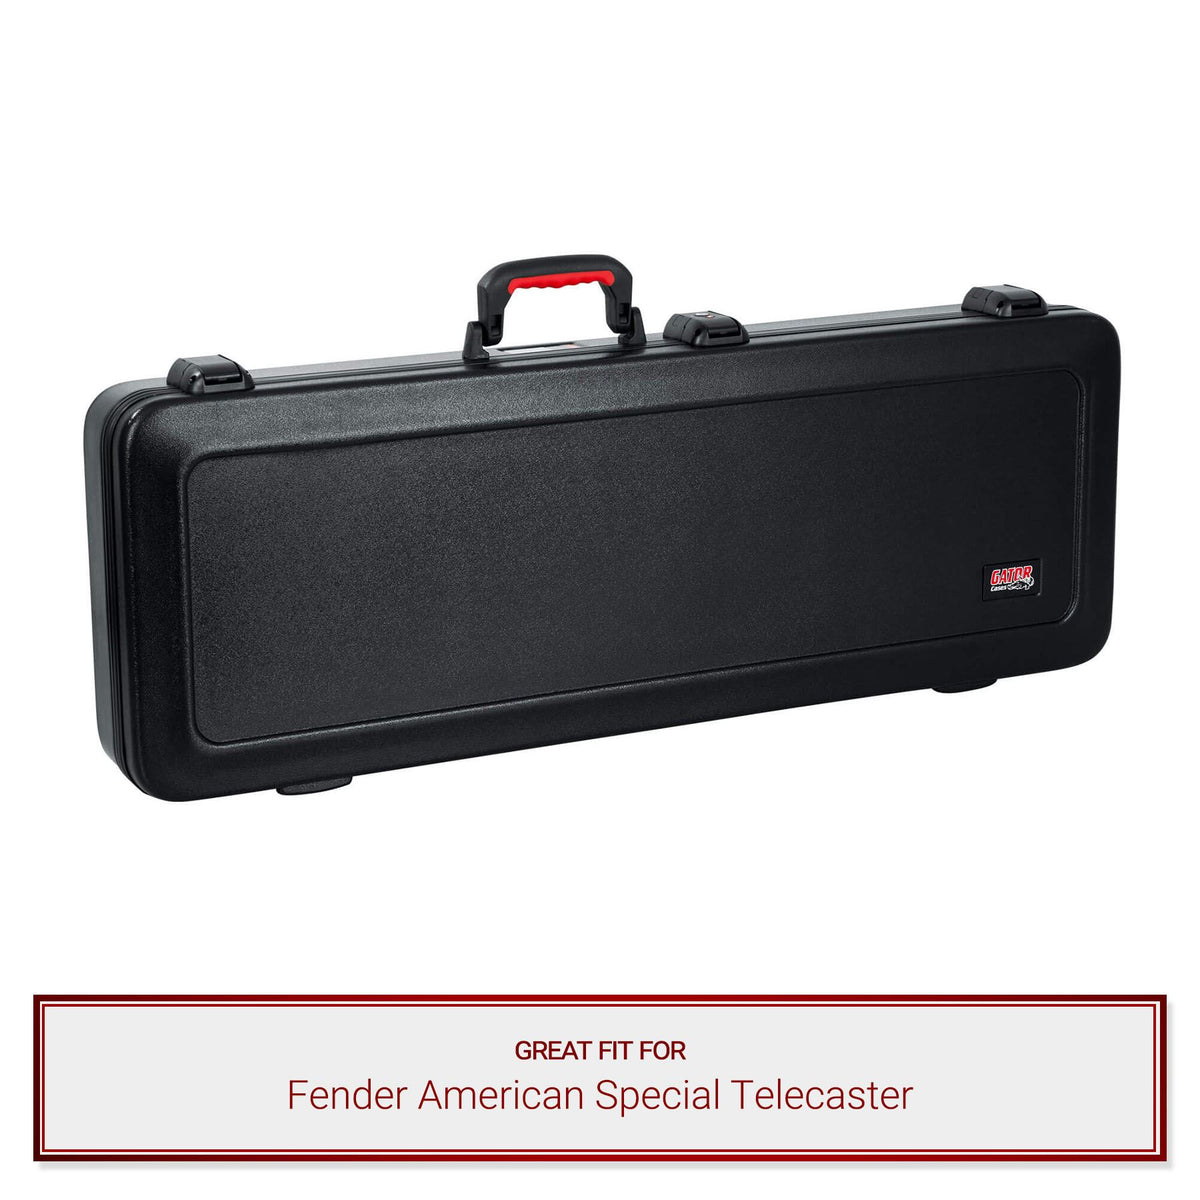 Gator TSA Electric Case fits Fender American Special Telecaster